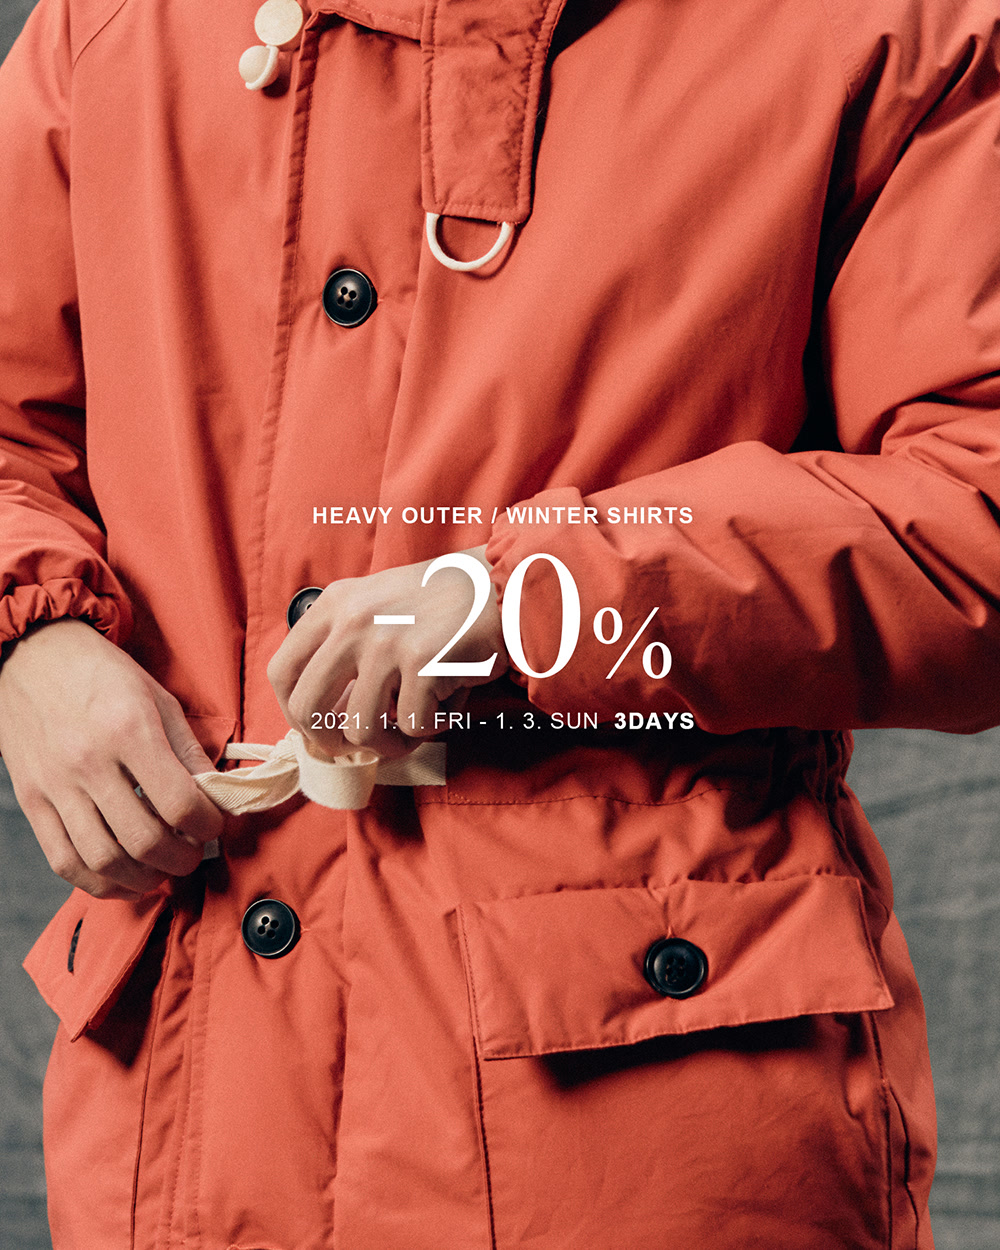 [MODE-MAN] HEAVY OUTER / WINTER SHIRTS -20% SALE